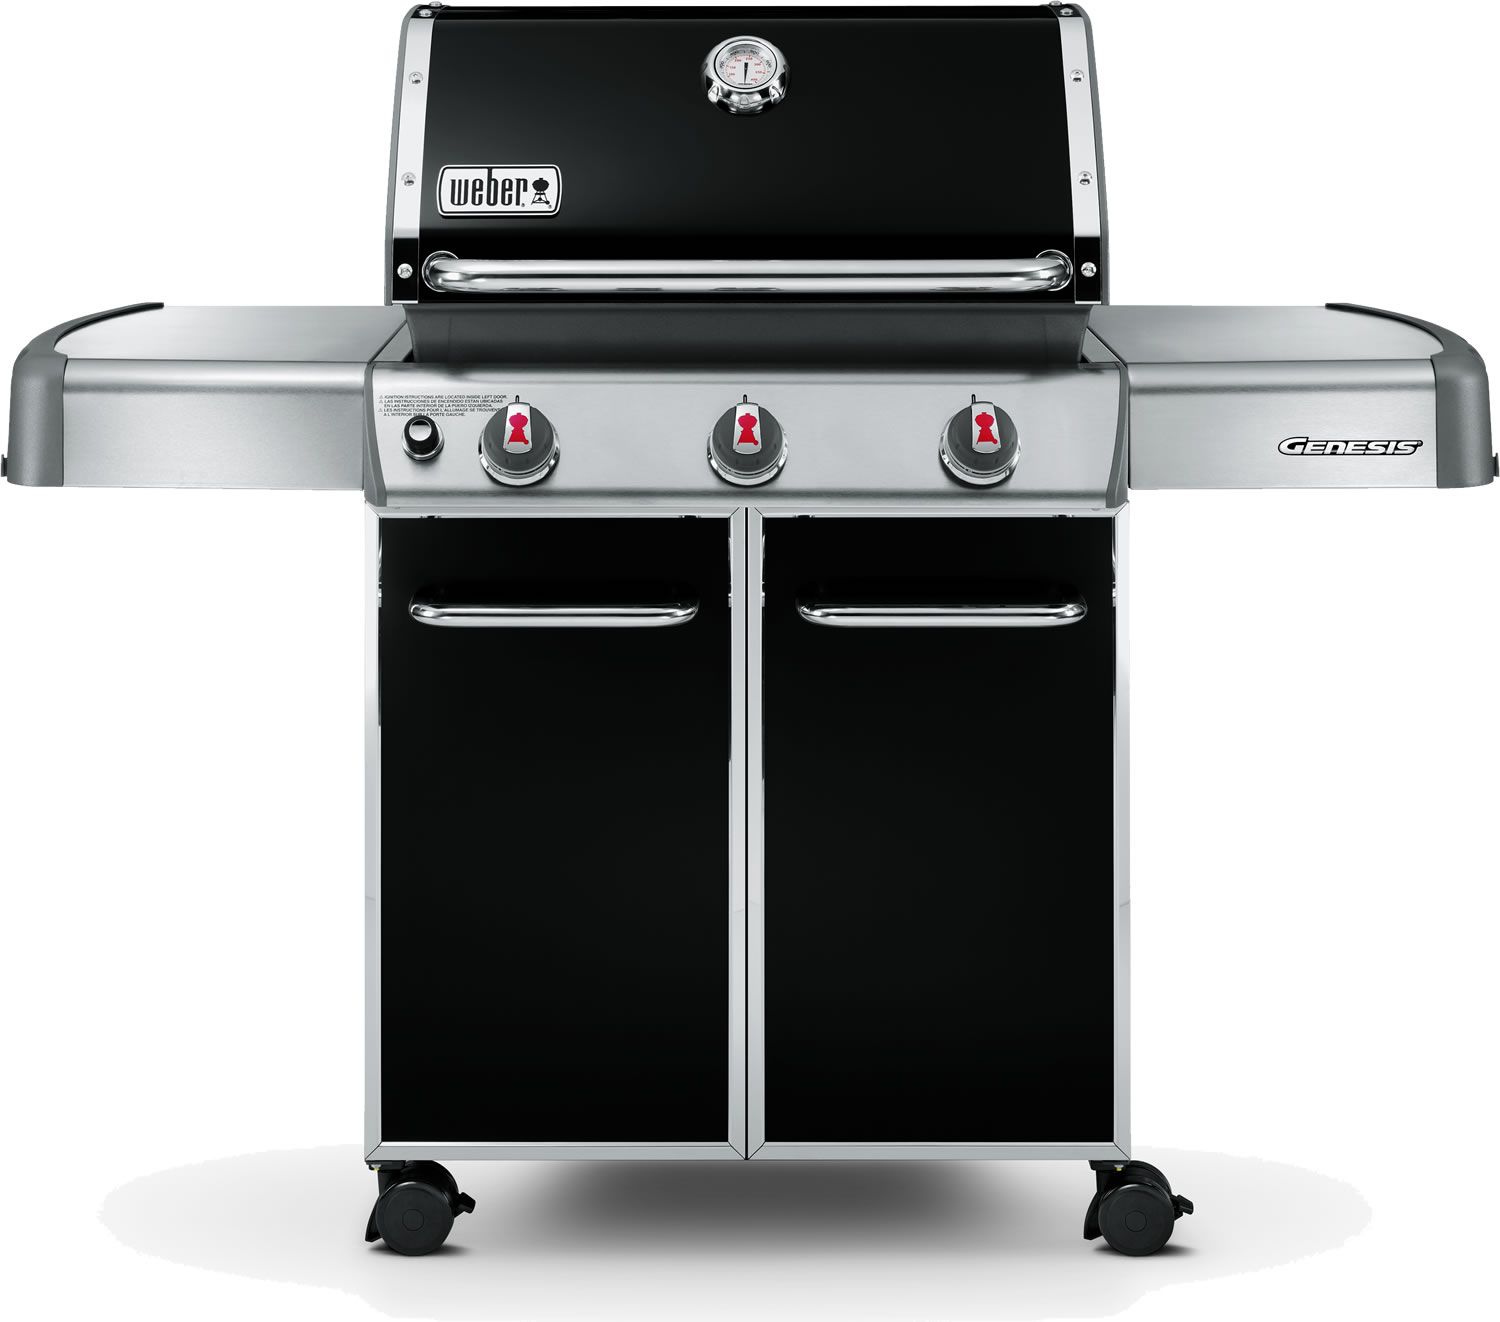 weber genesis e310 bbq in black 830 garden4less uk shop. Black Bedroom Furniture Sets. Home Design Ideas